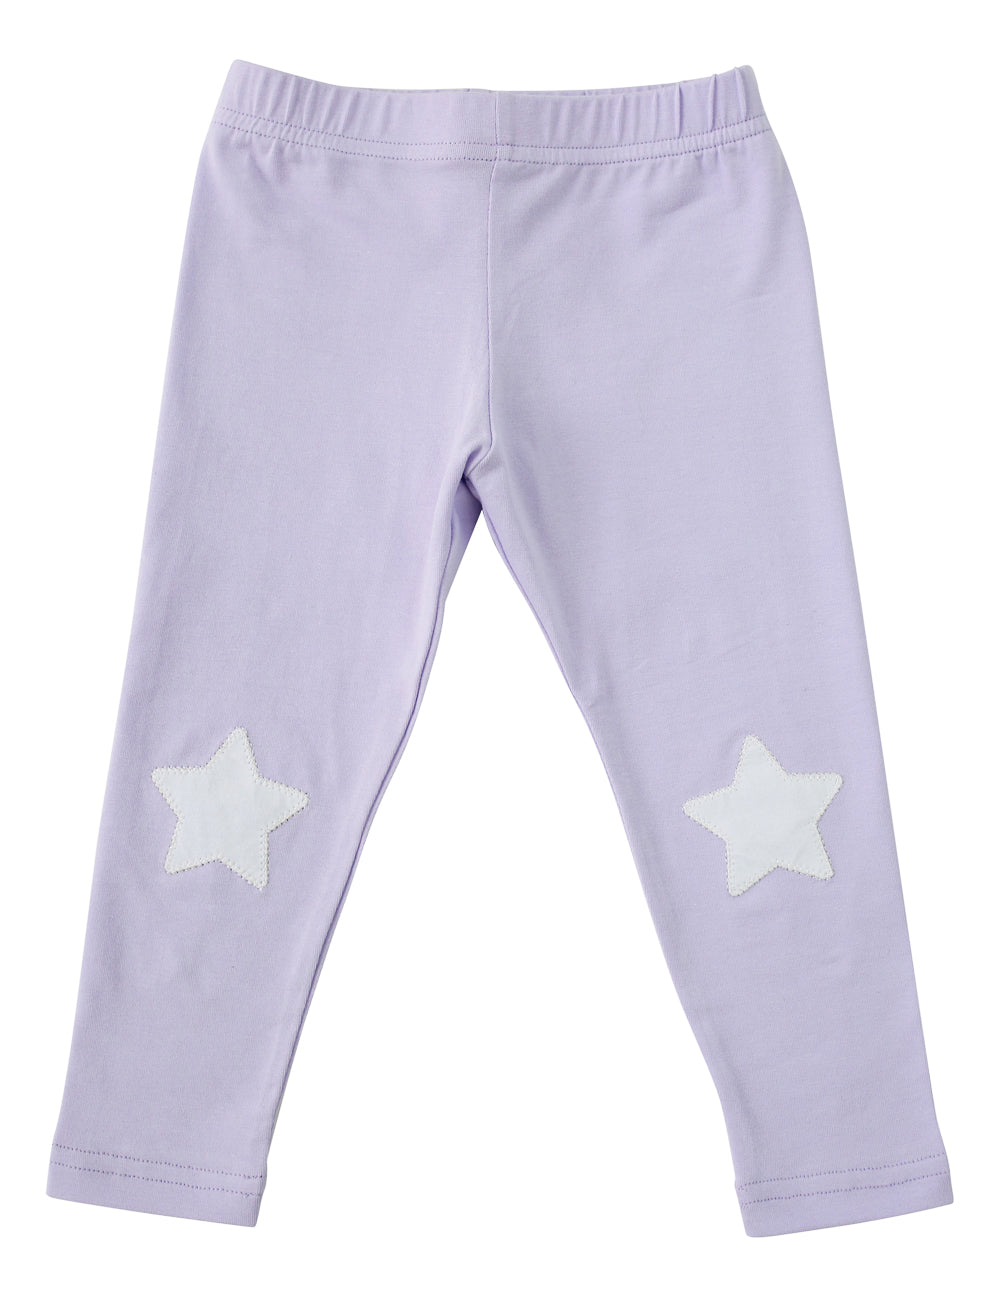 Vuvu Kids | VuVu Kids Star Patch Purple Leggings | Surfcoast Kids Torquay VIC